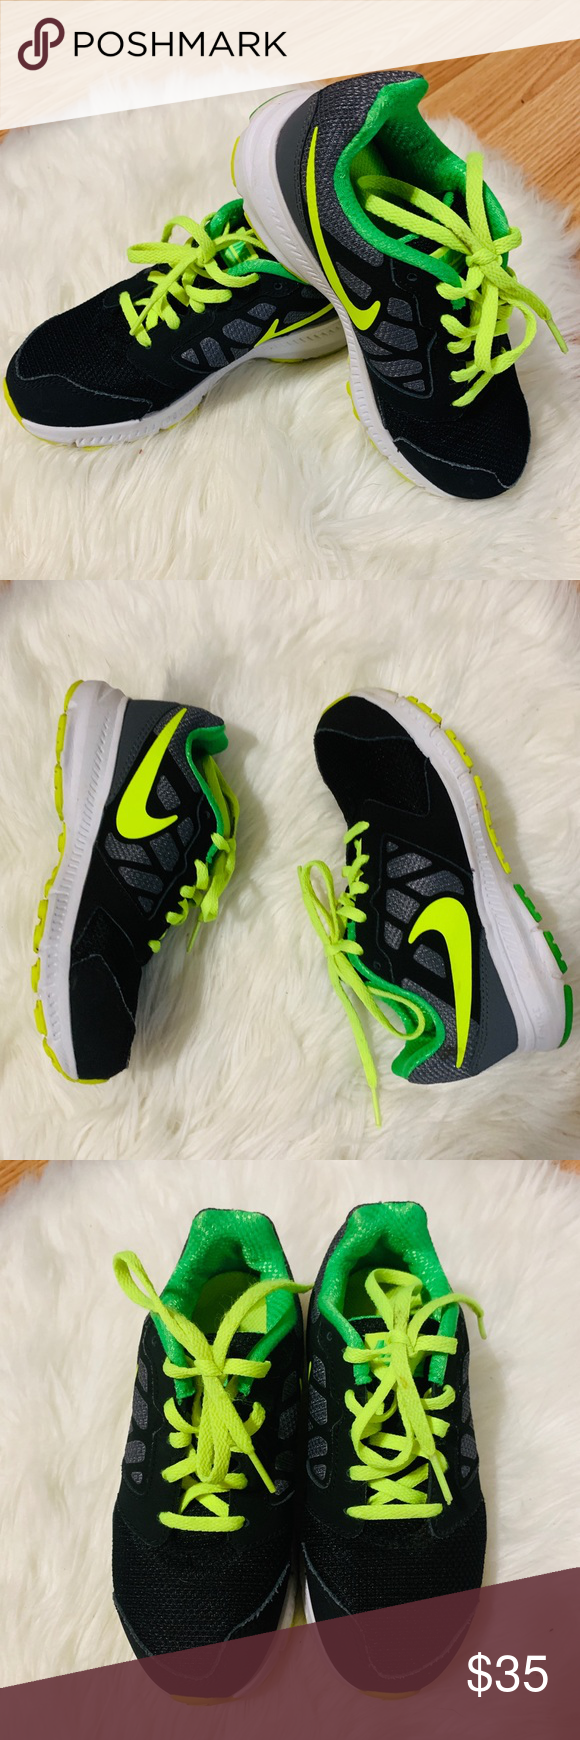 Nike Children's Shoes Size 13